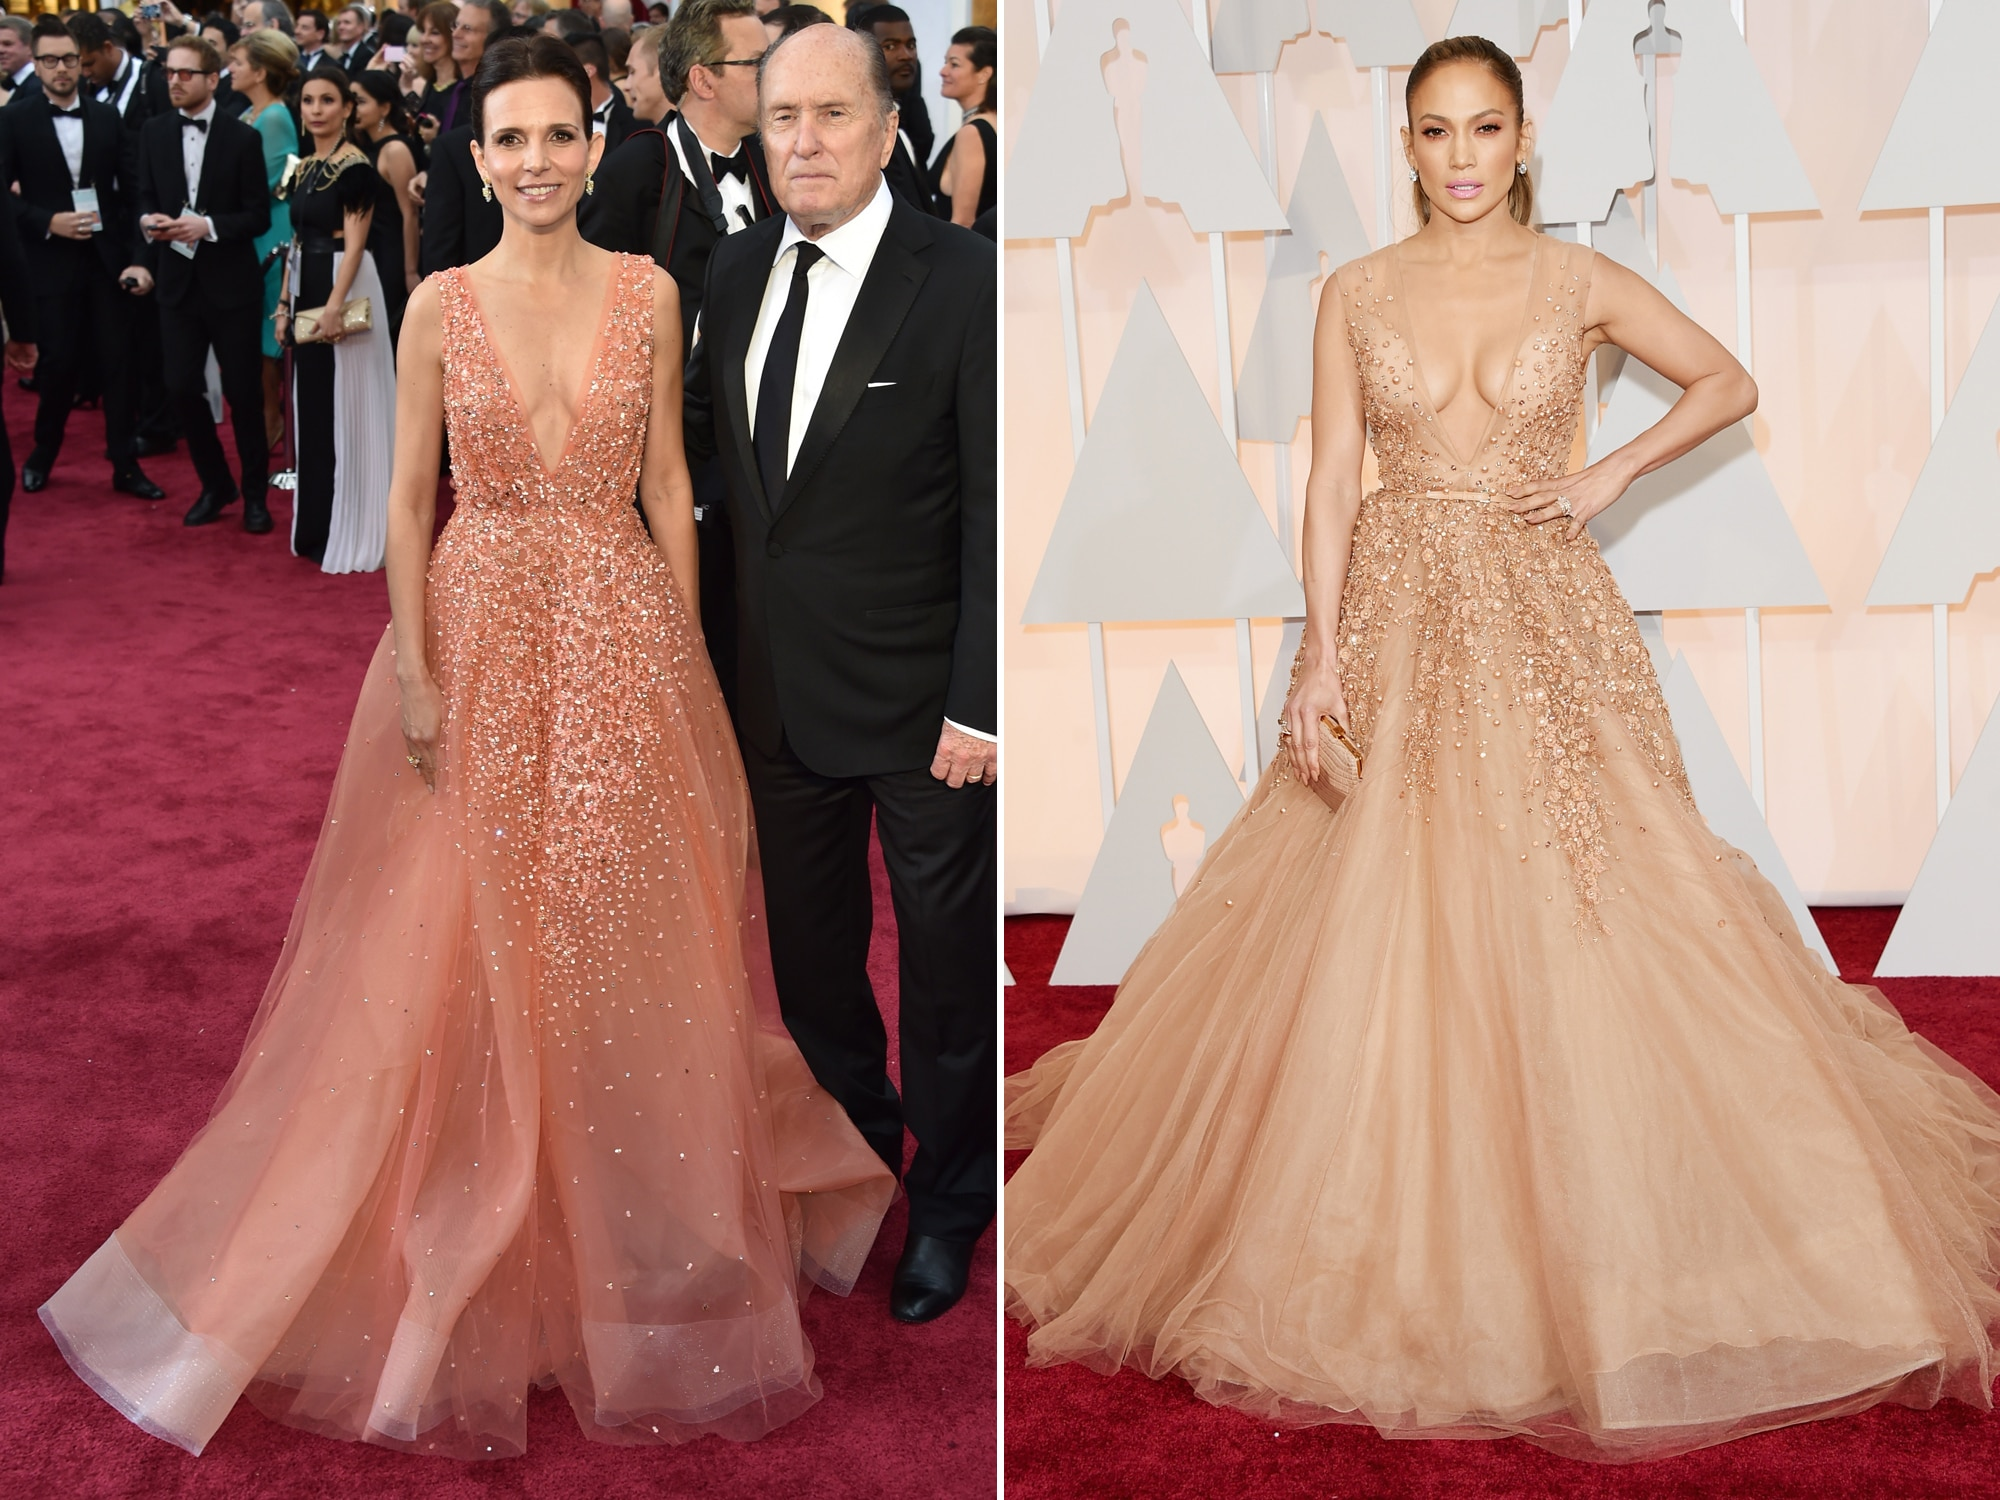 Watch The 35 Worst Fashion Fails in Oscars History video